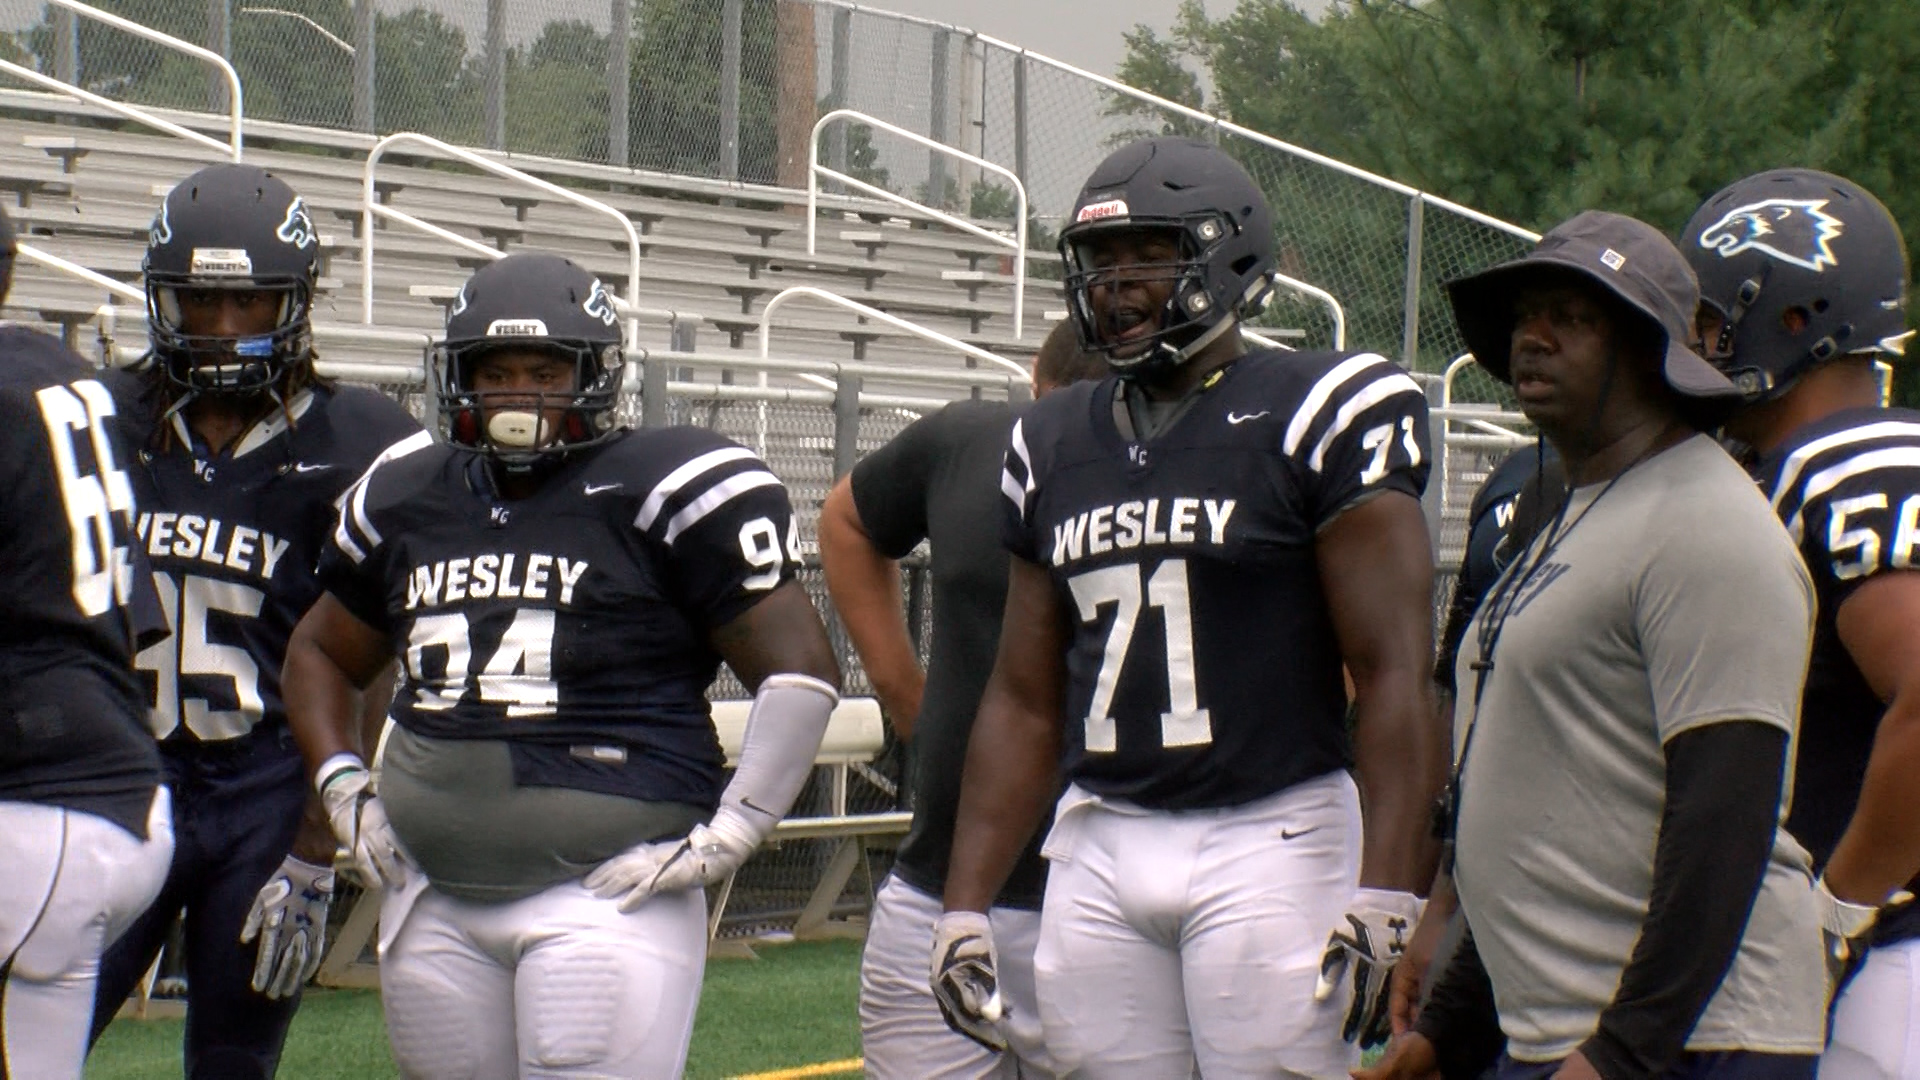 Wesley's Gono Hopes To Impress NFL Scouts